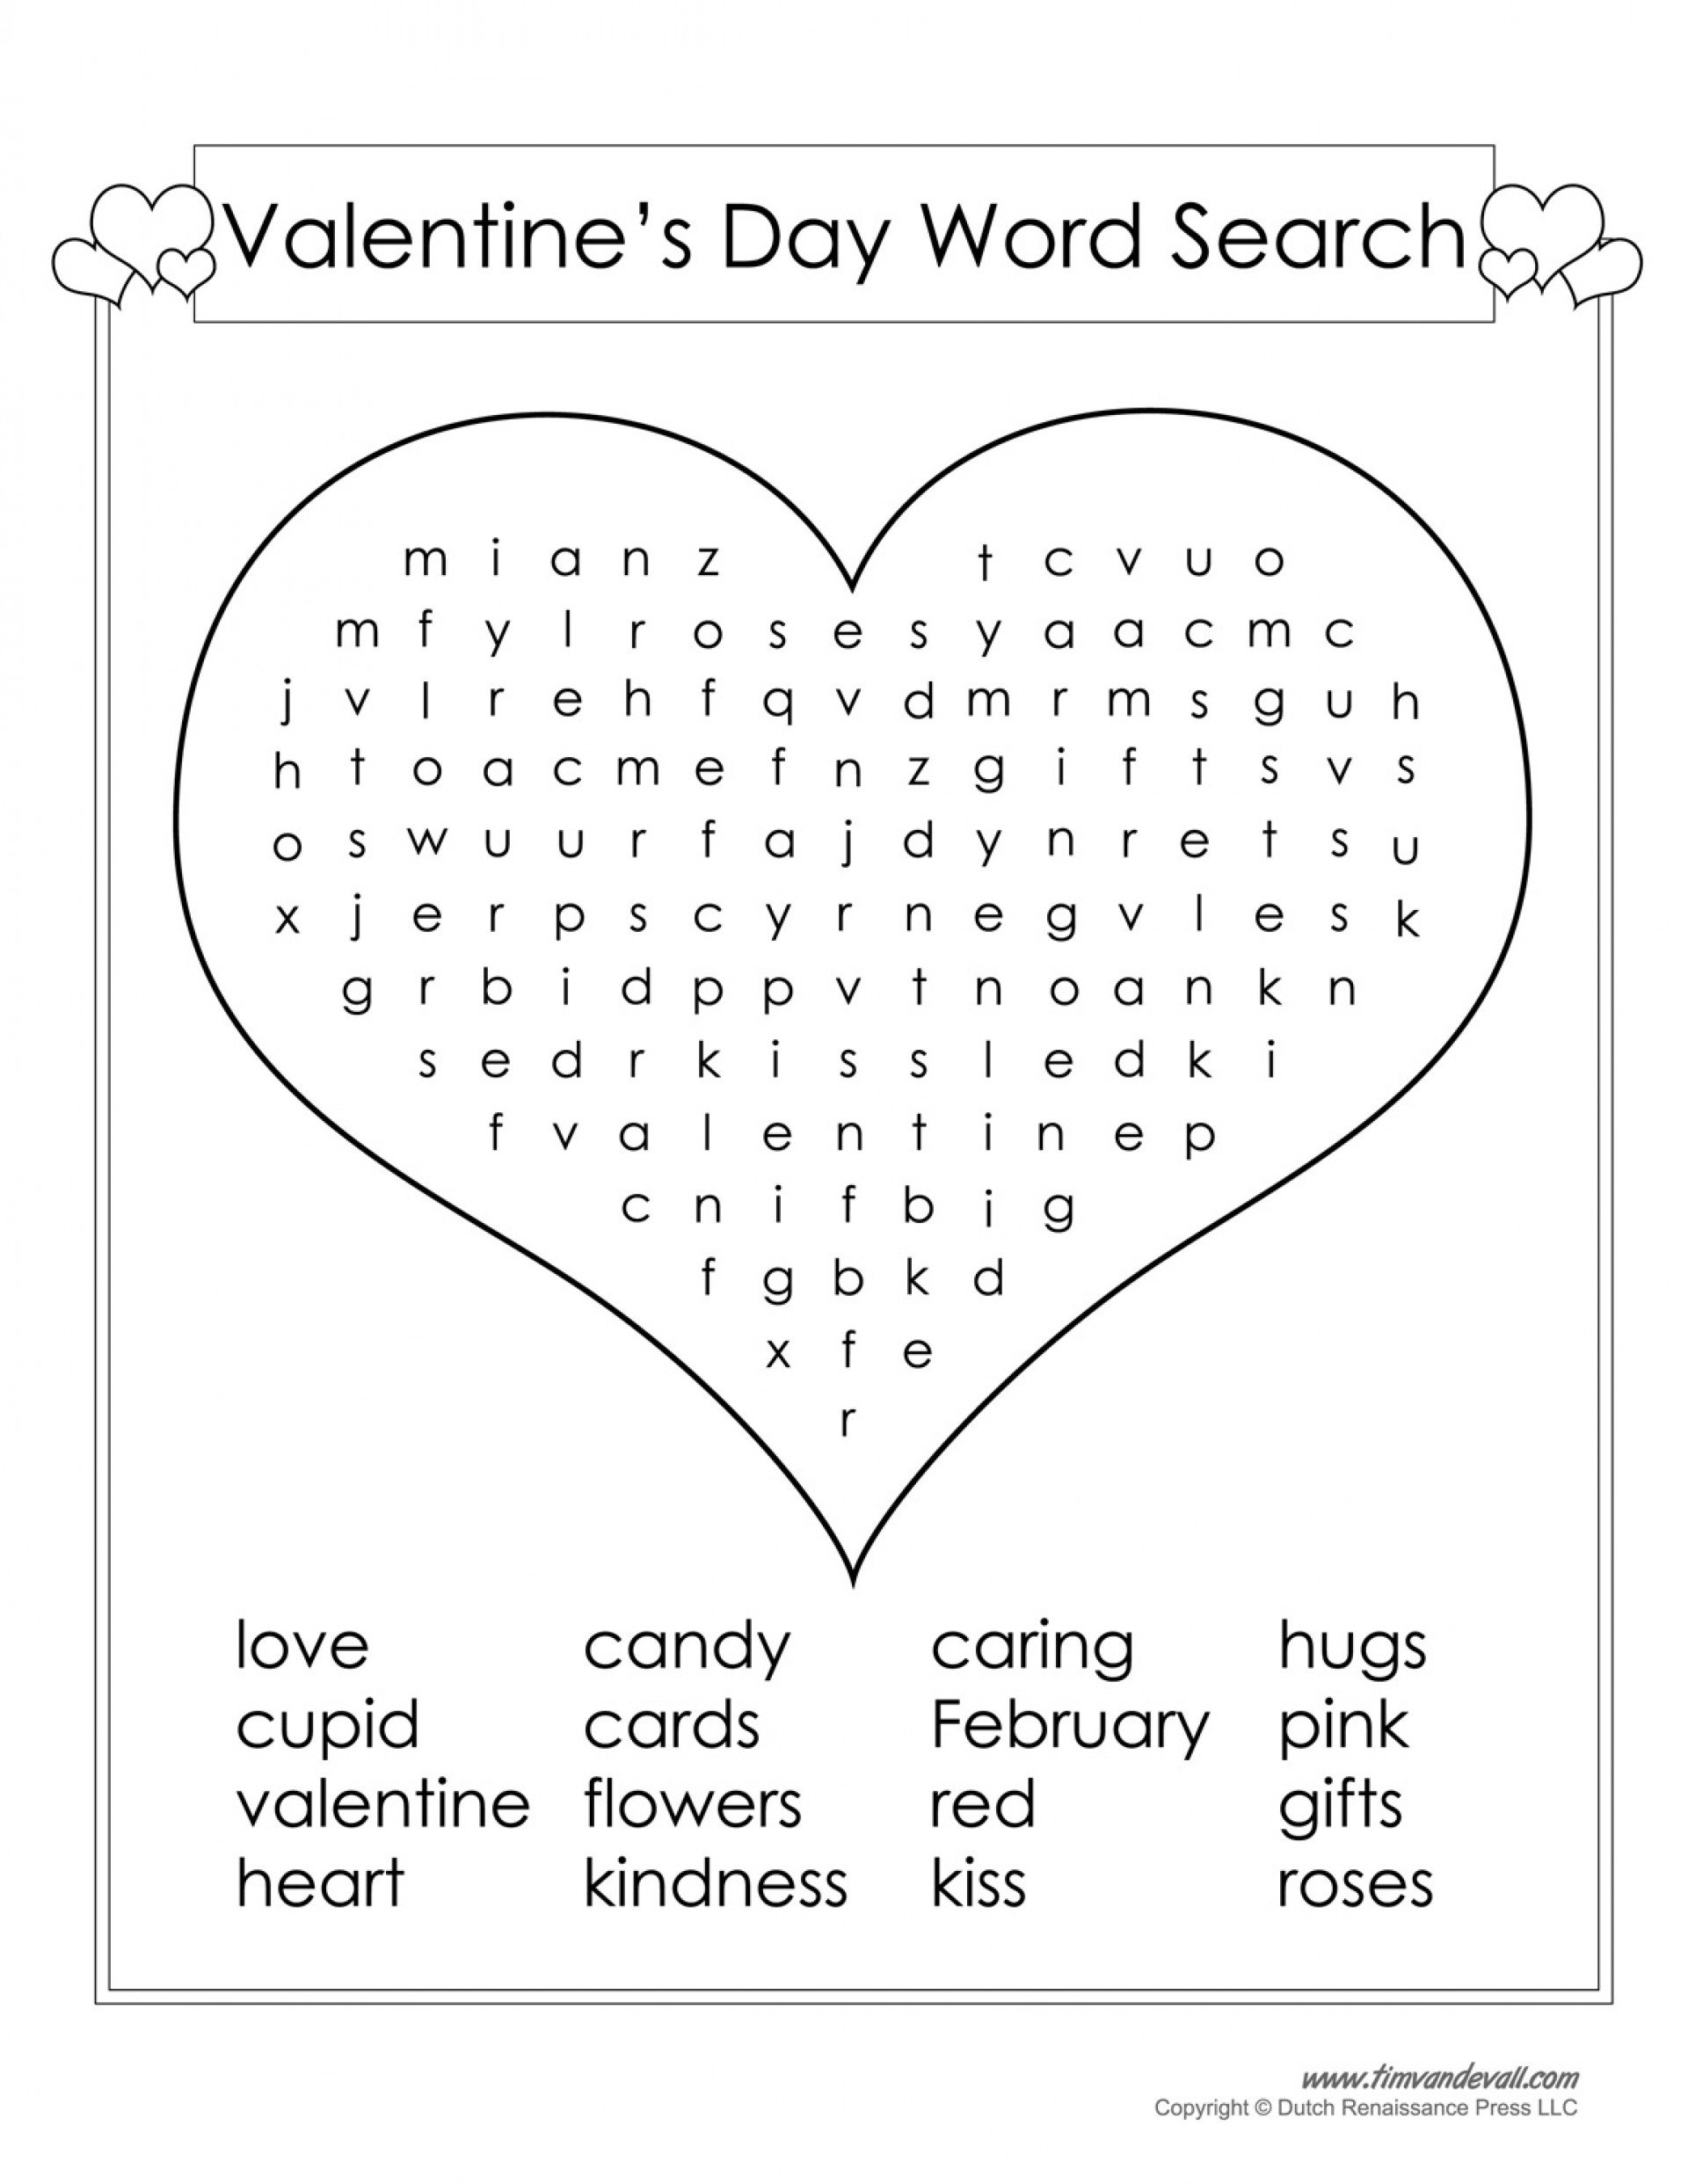 Valentines Day Word Search Large Light Pink Valentine S Crossword - Free Printable Valentine Crossword Puzzles